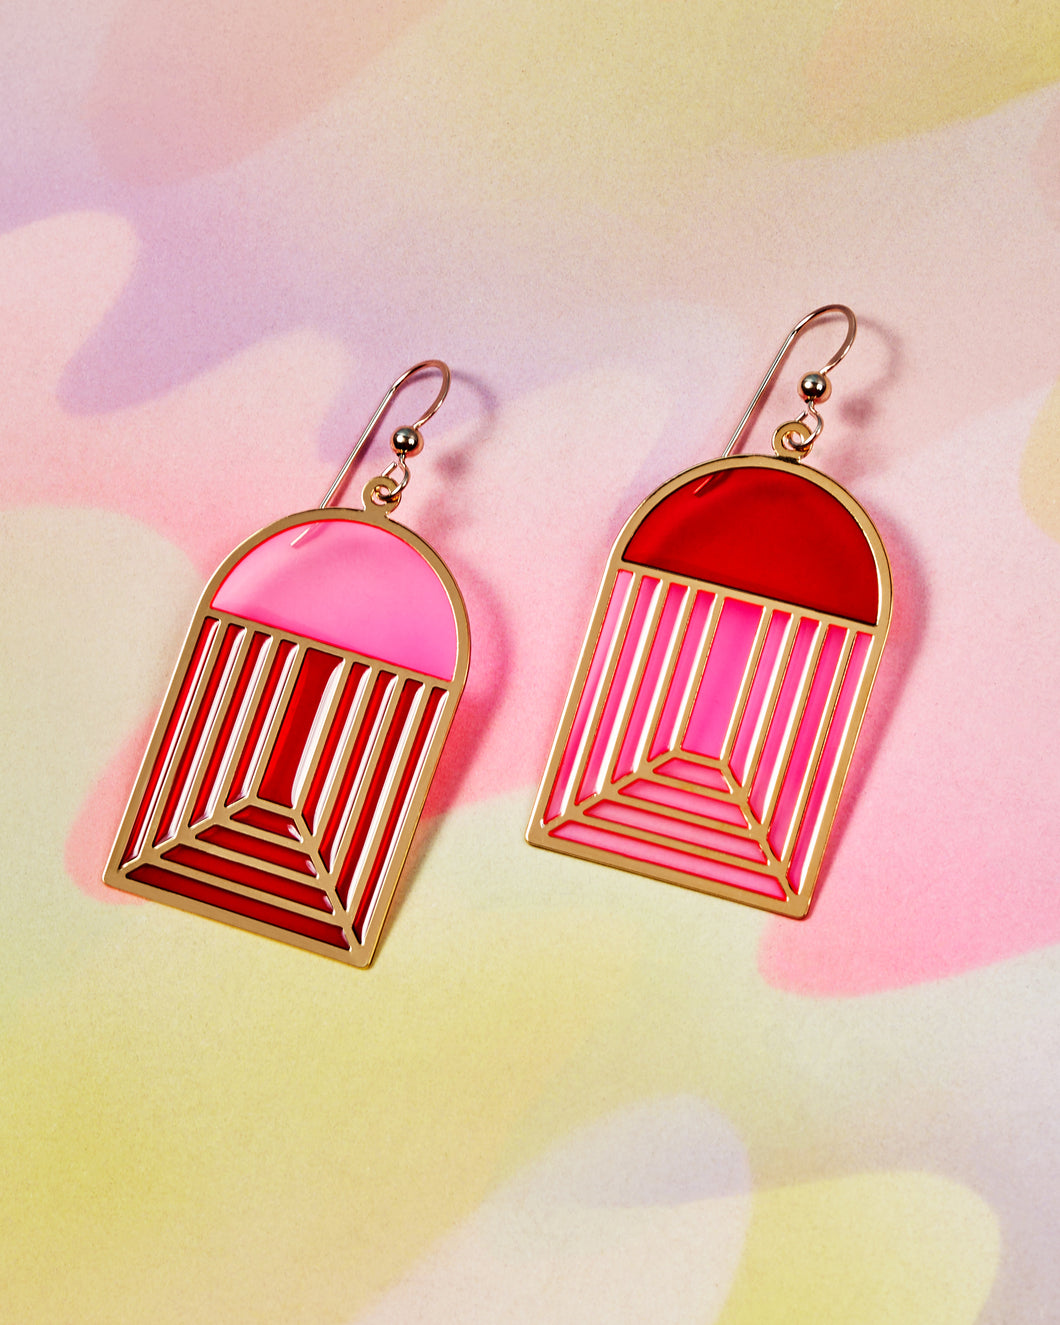 Translucent Arch Earrings - Pink & Red